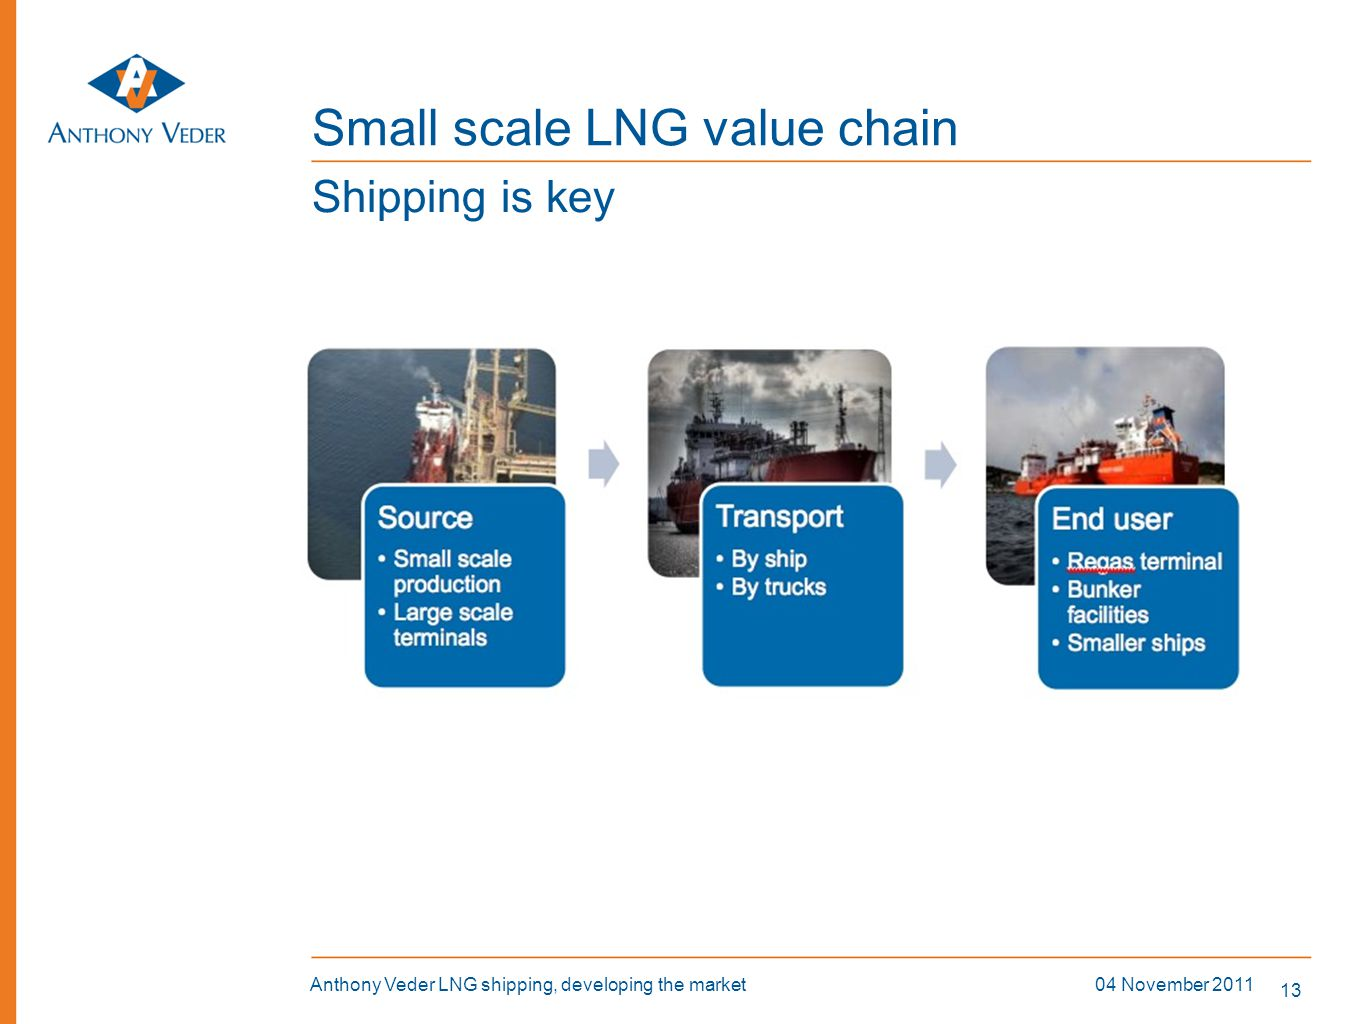 13 04 November 2011Anthony Veder LNG shipping, developing the market Small scale LNG value chain Shipping is key